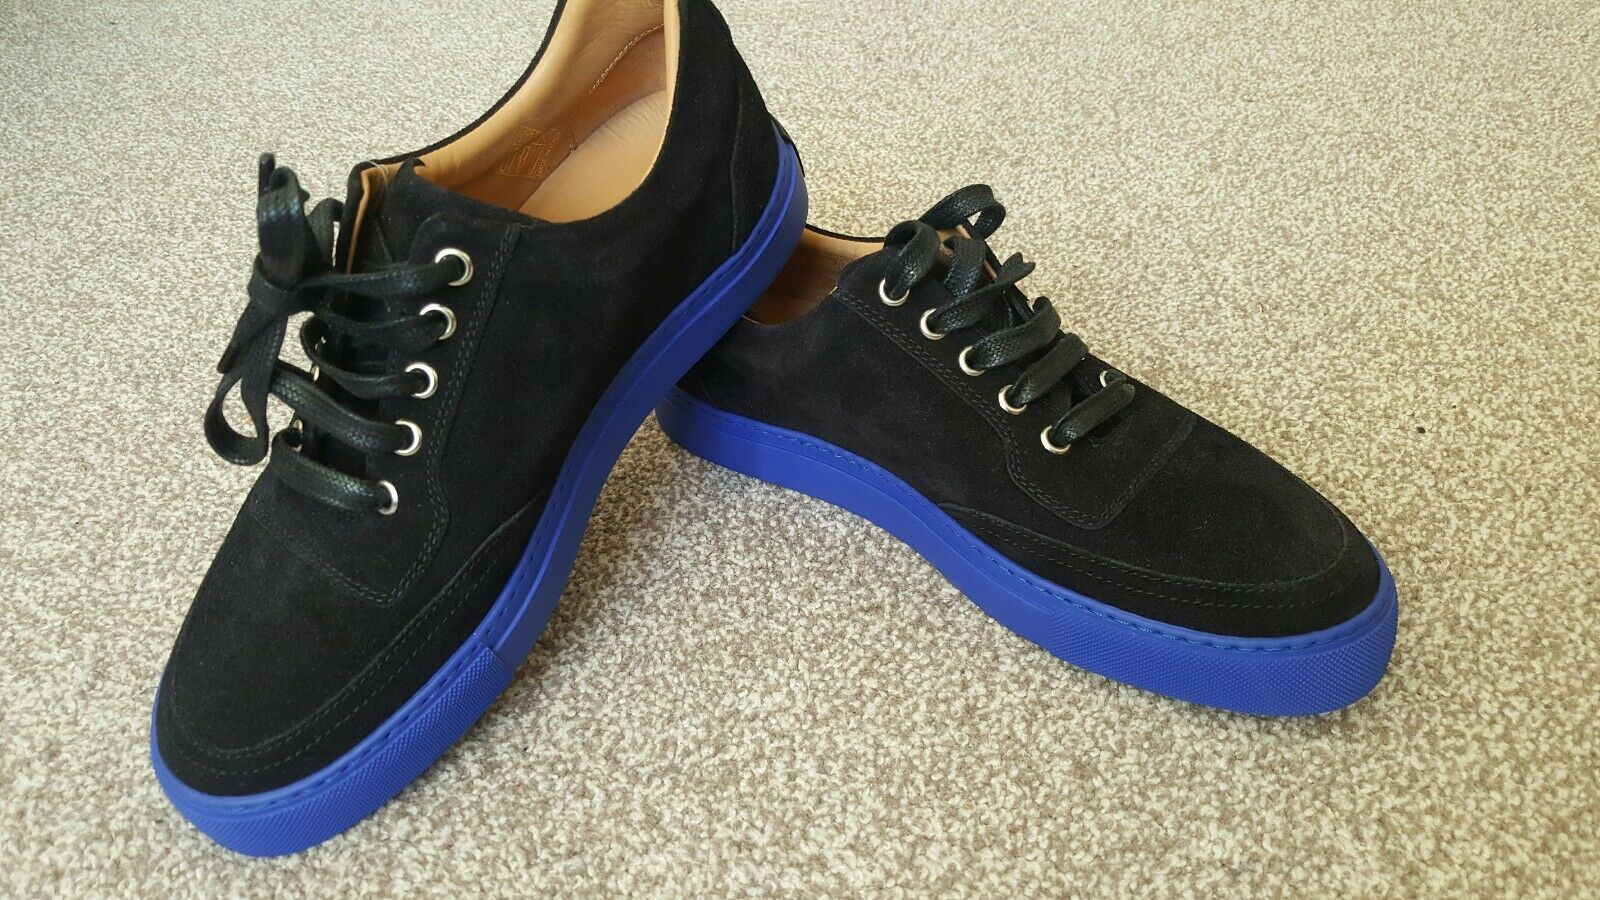 HARRYS of London Unisexe Sude Baskets chaussures Taille 38 (UK 5)